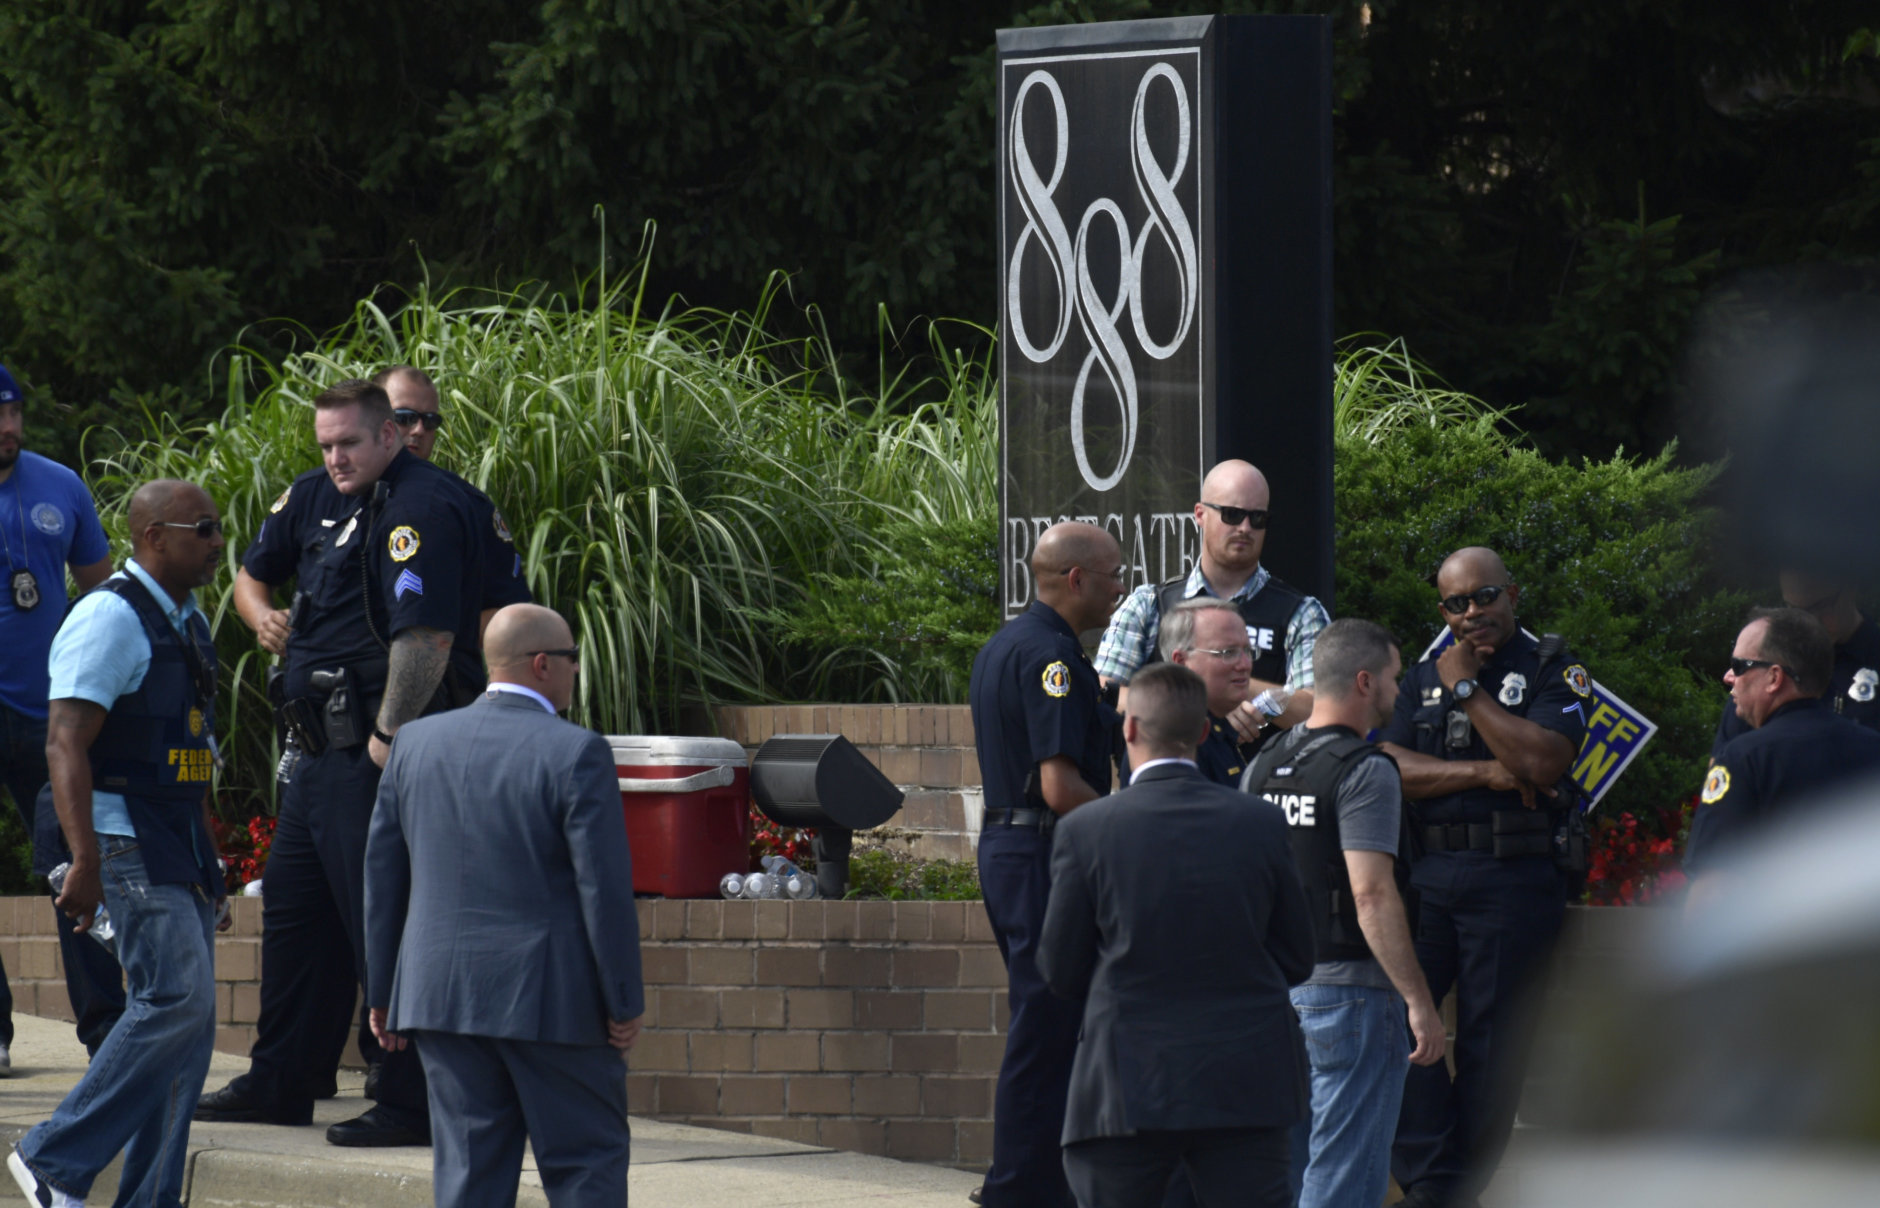 Police secure the scene of a shooting at a newspaper in Annapolis, Md., Thursday, June 28, 2018. (AP Photo/Susan Walsh)